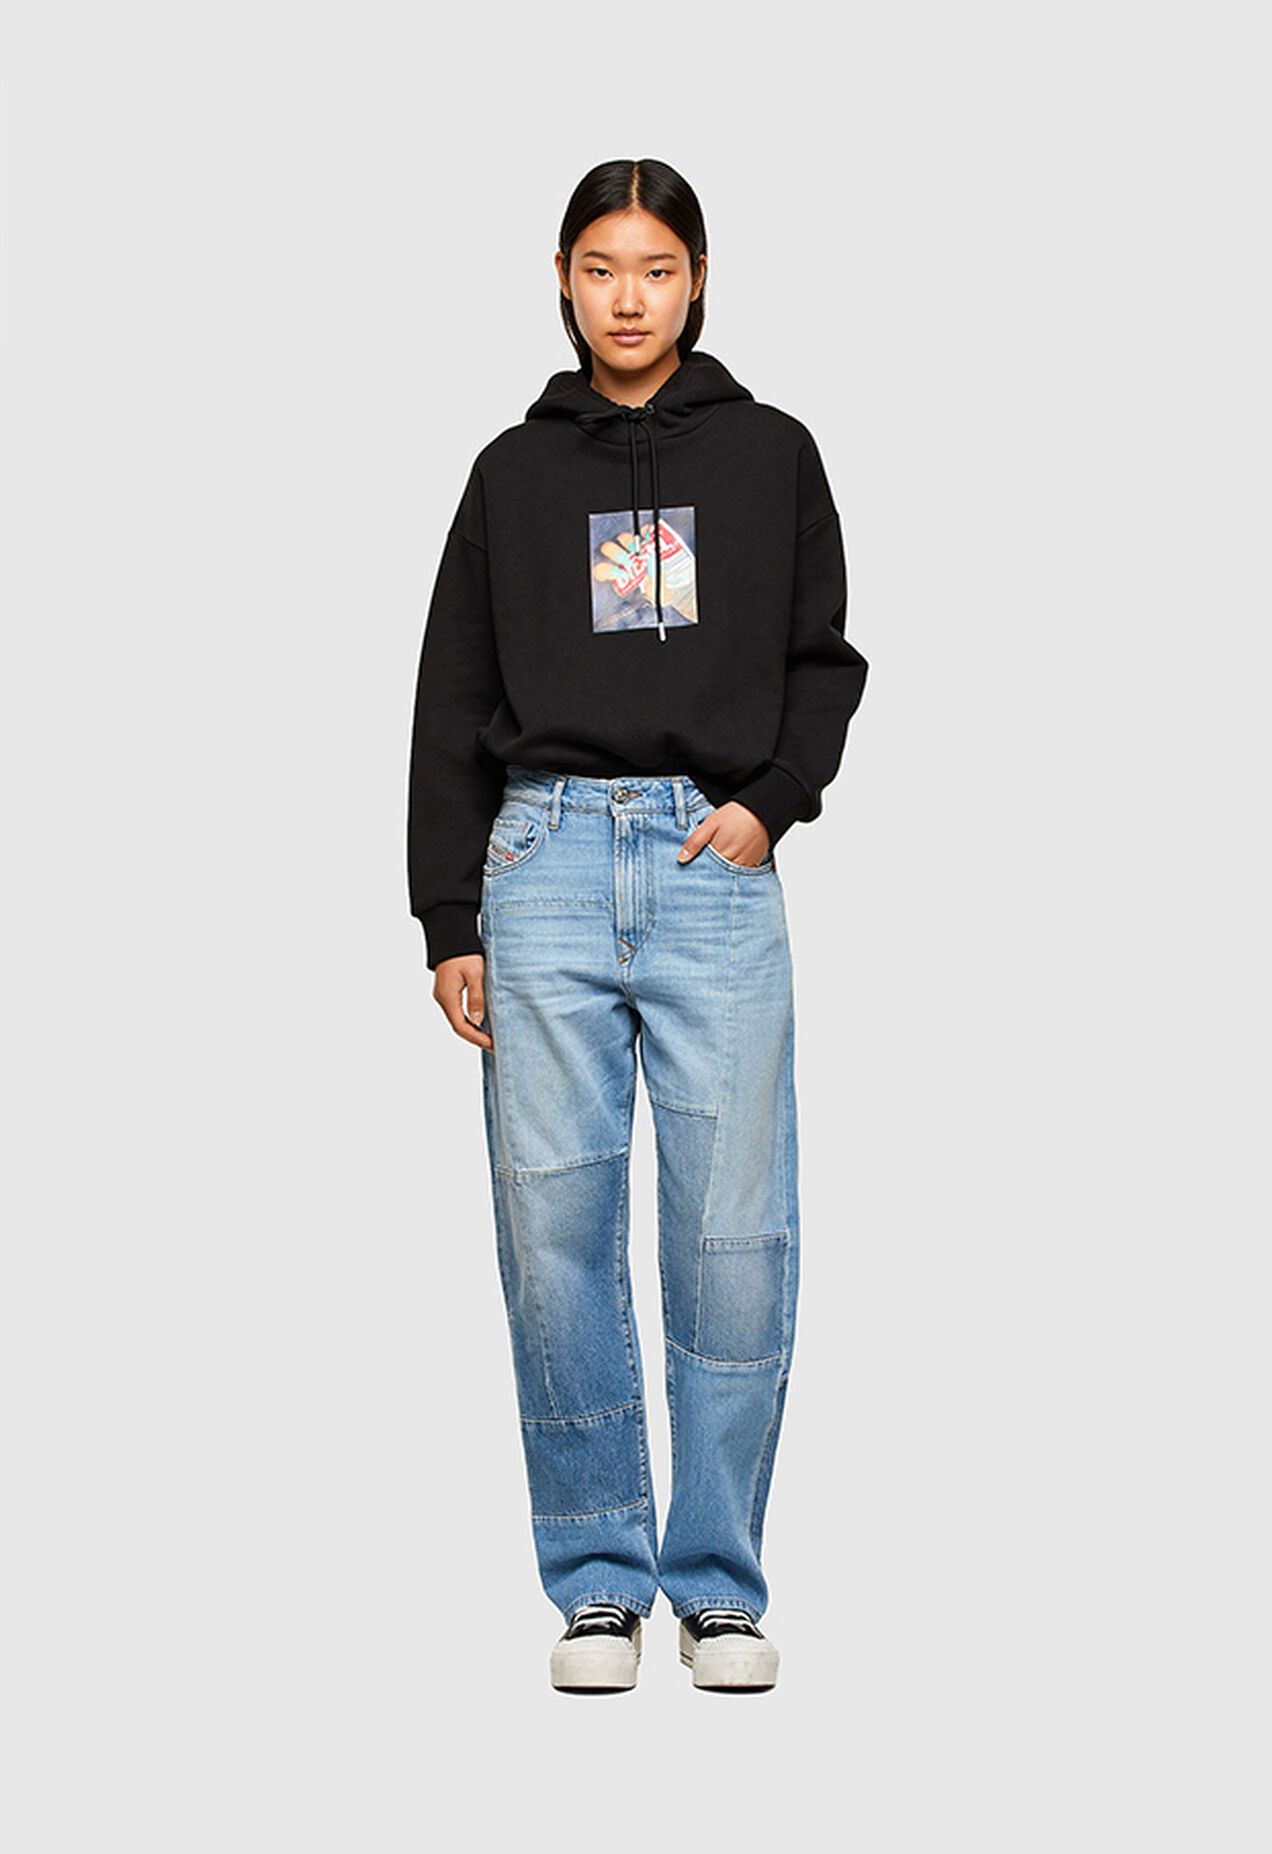 https://lv.diesel.com/dw/image/v2/BBLG_PRD/on/demandware.static/-/Library-Sites-DieselMFSharedLibrary/default/dwee5df74f/CATEGORYOV/2X2_D-REGGY_DENIM-SPRING-LAUNCH_A01652_009ND_01_C.jpg?sw=1272&sh=1854